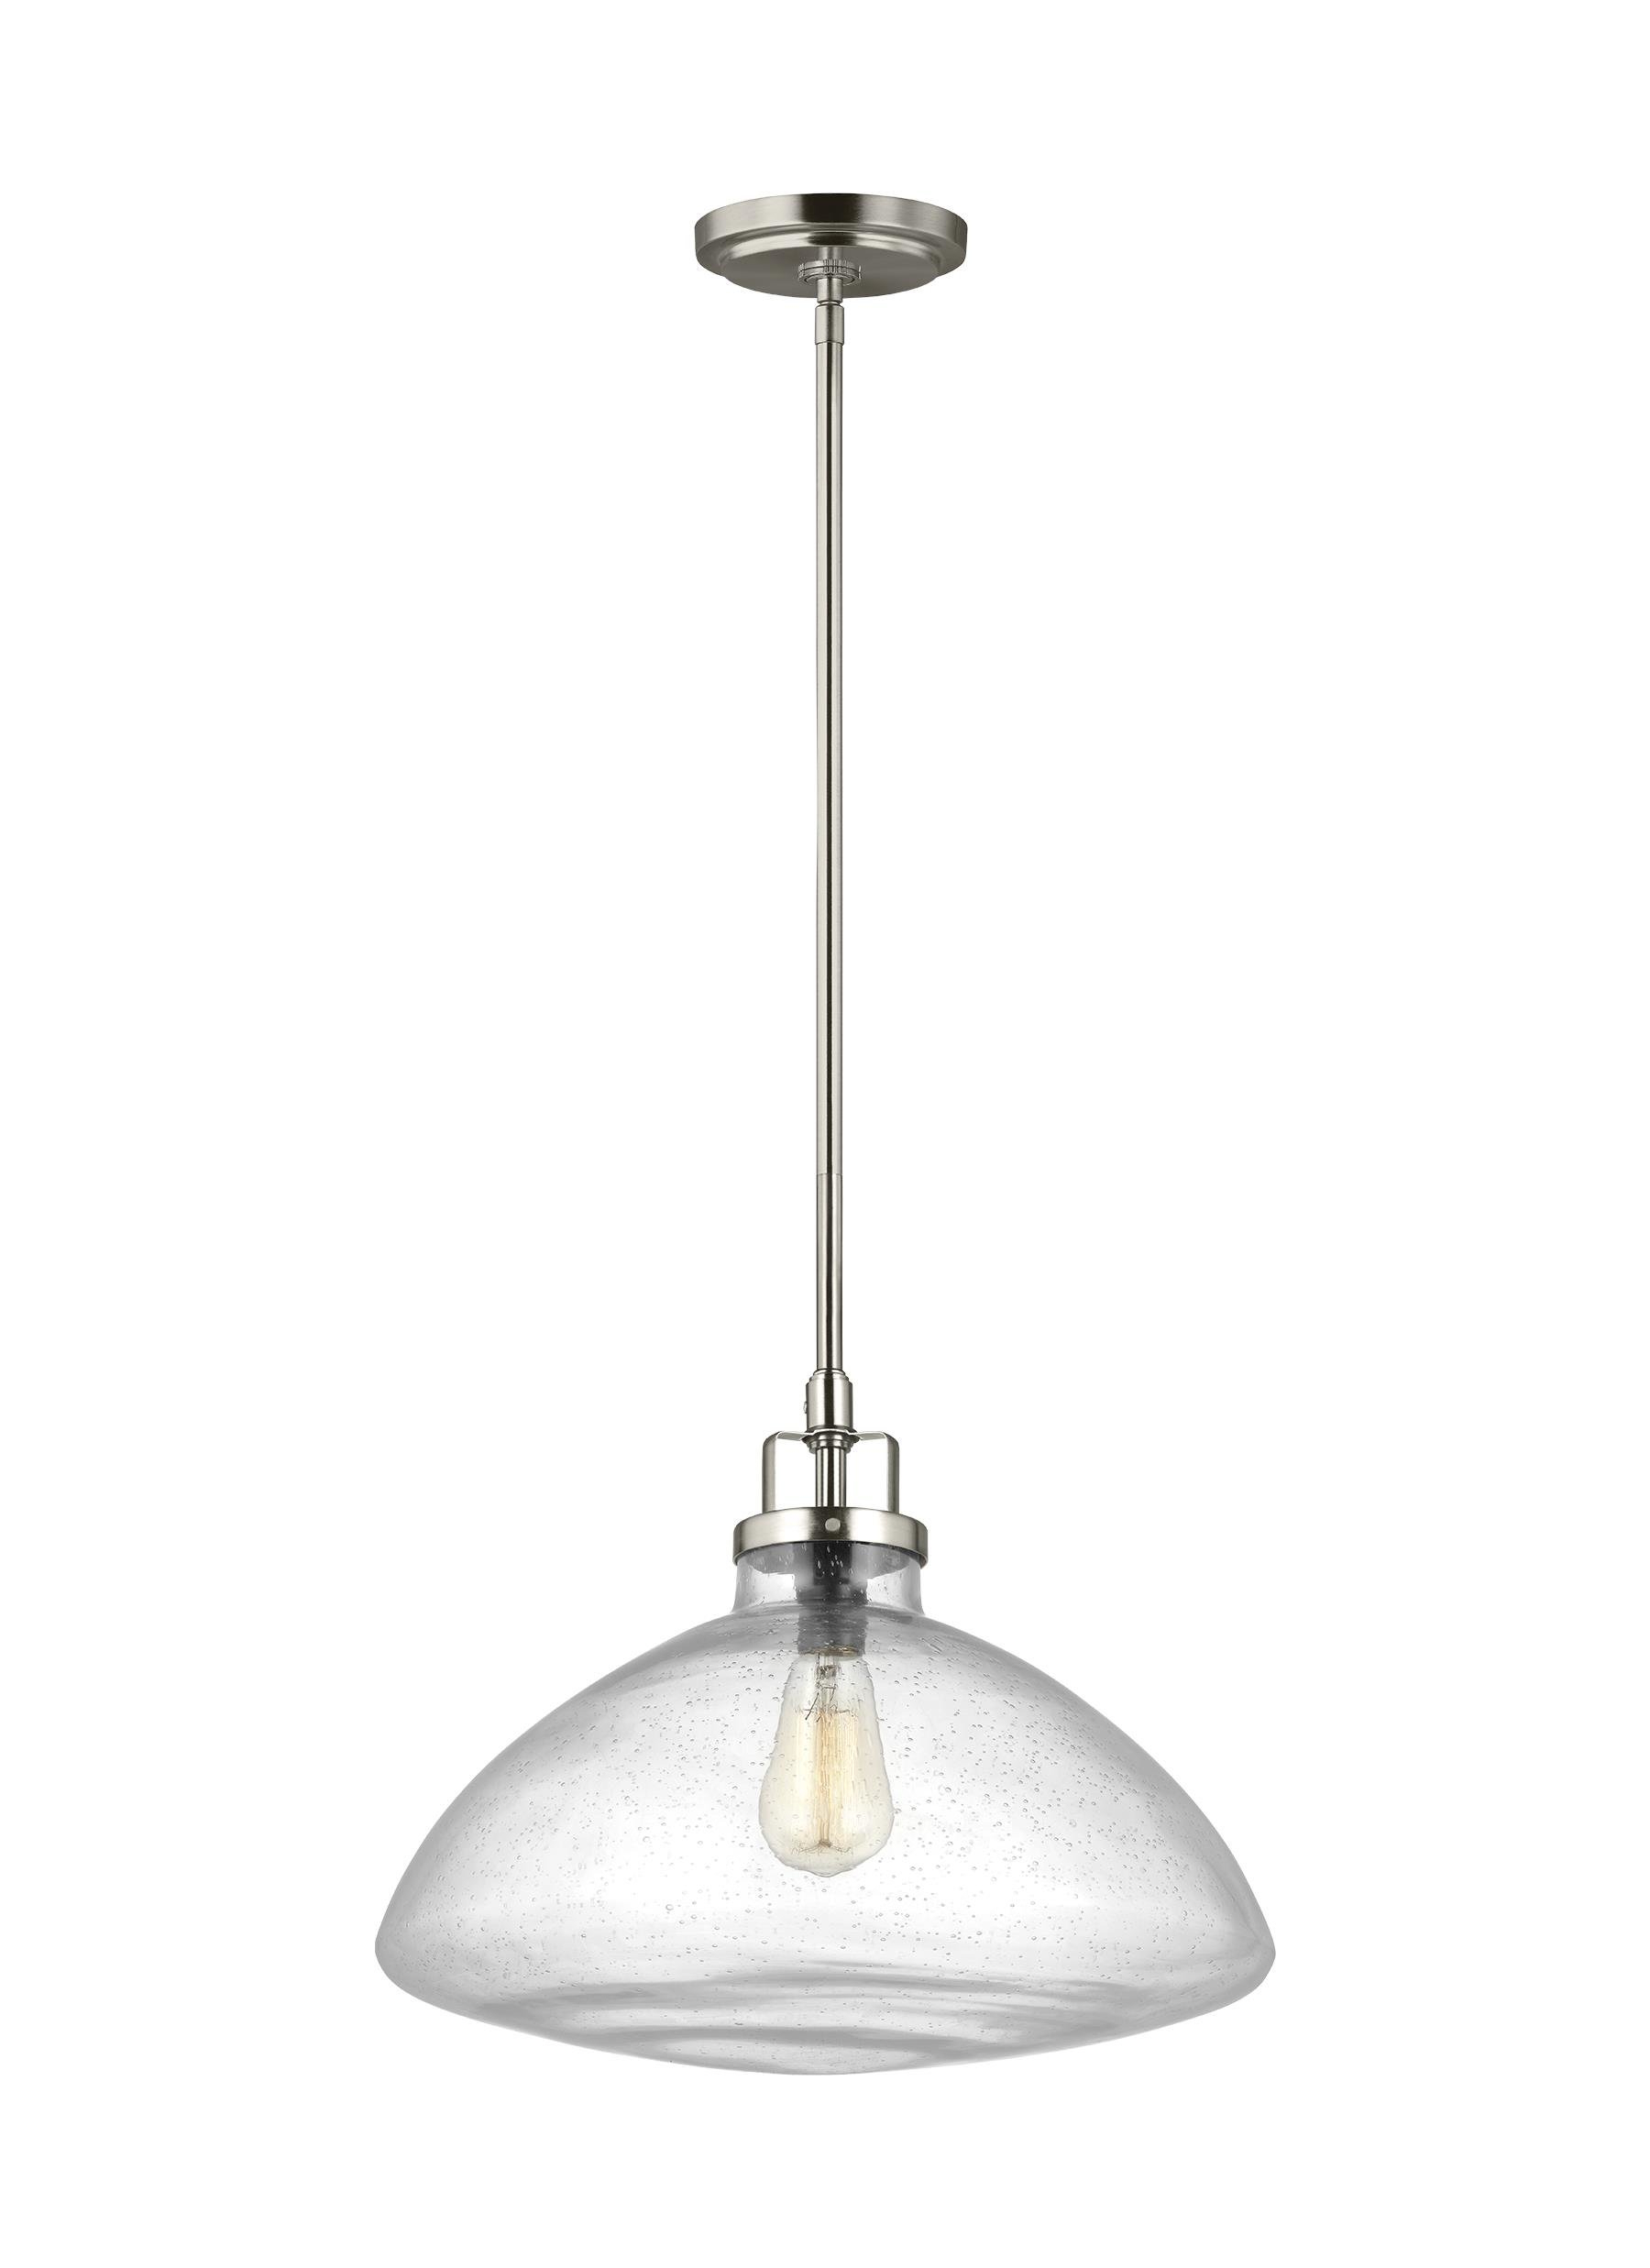 Houon 1-Light Single Schoolhouse Pendant in Most Current Granville 3-Light Single Dome Pendants